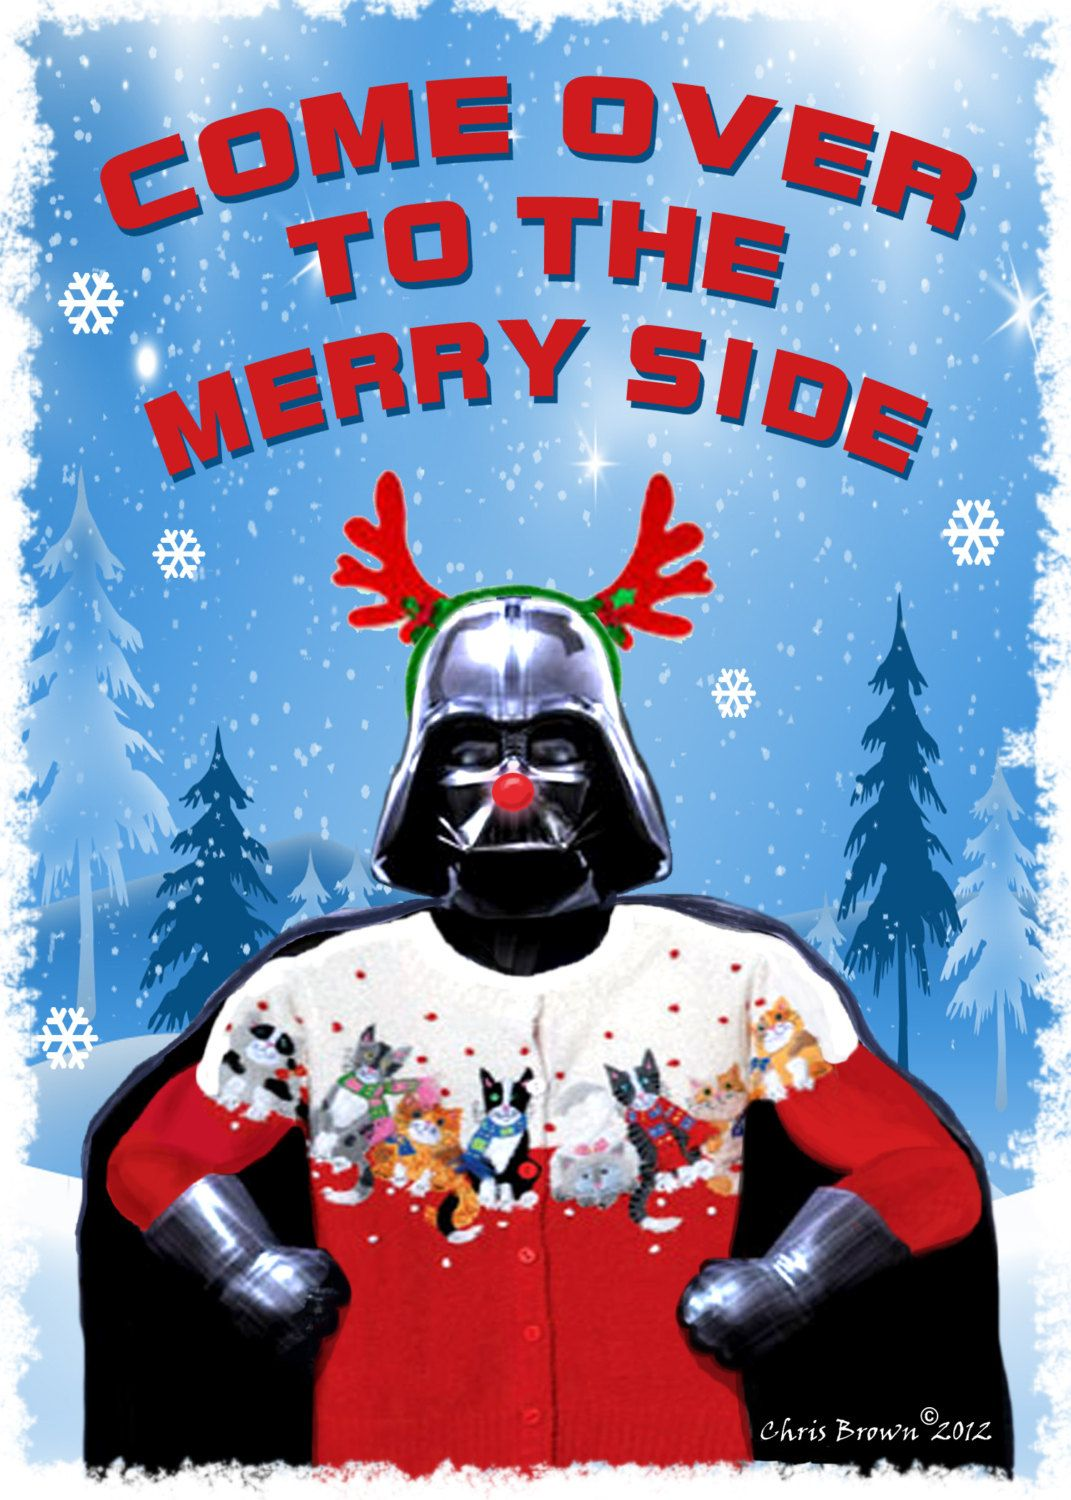 star wars christmas cards dart vader christmas pack of 4 cards blank inside 5 x 7 star wars fans order now beat the rush 800 via etsy